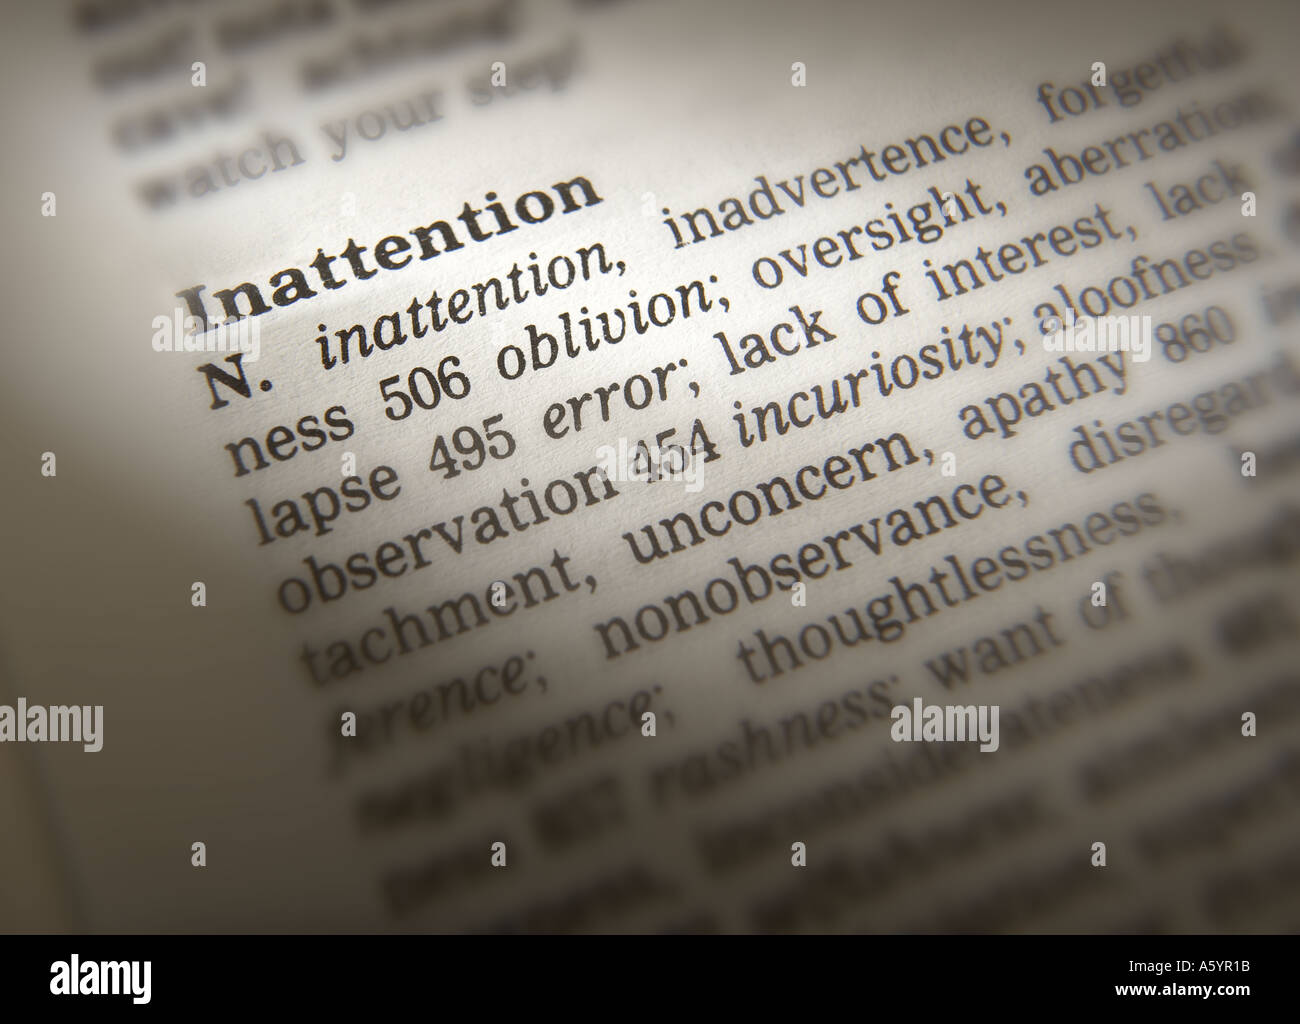 THESAURUS PAGE SHOWING DEFINITION OF WORD INATTENTION - Stock Image